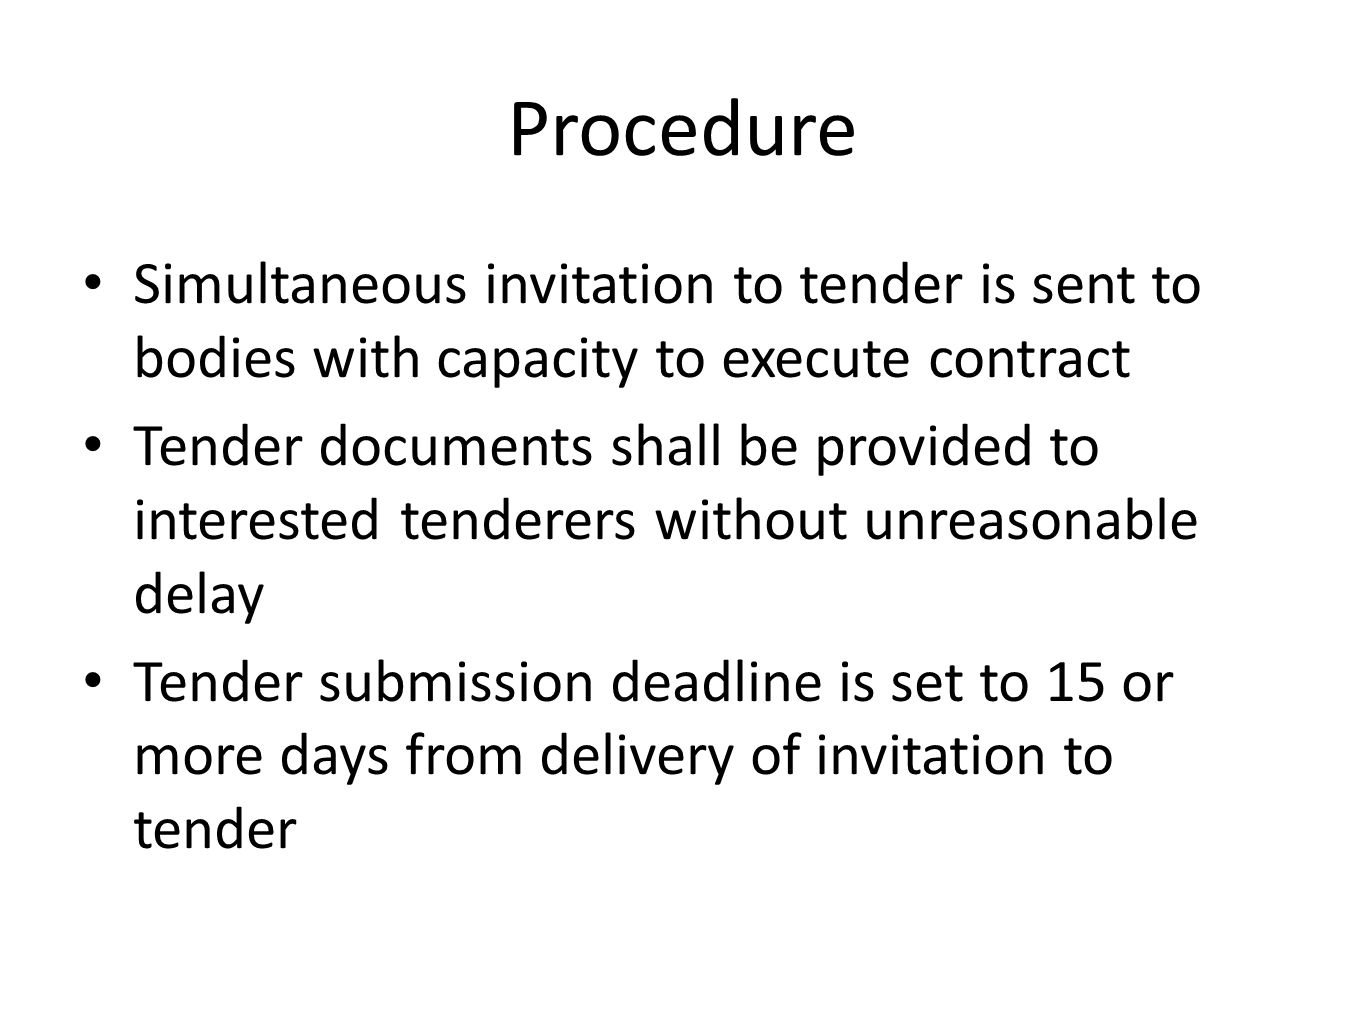 Civil society procurement monitor ppt download procedure simultaneous invitation to tender is sent to bodies with capacity to execute contract stopboris Gallery